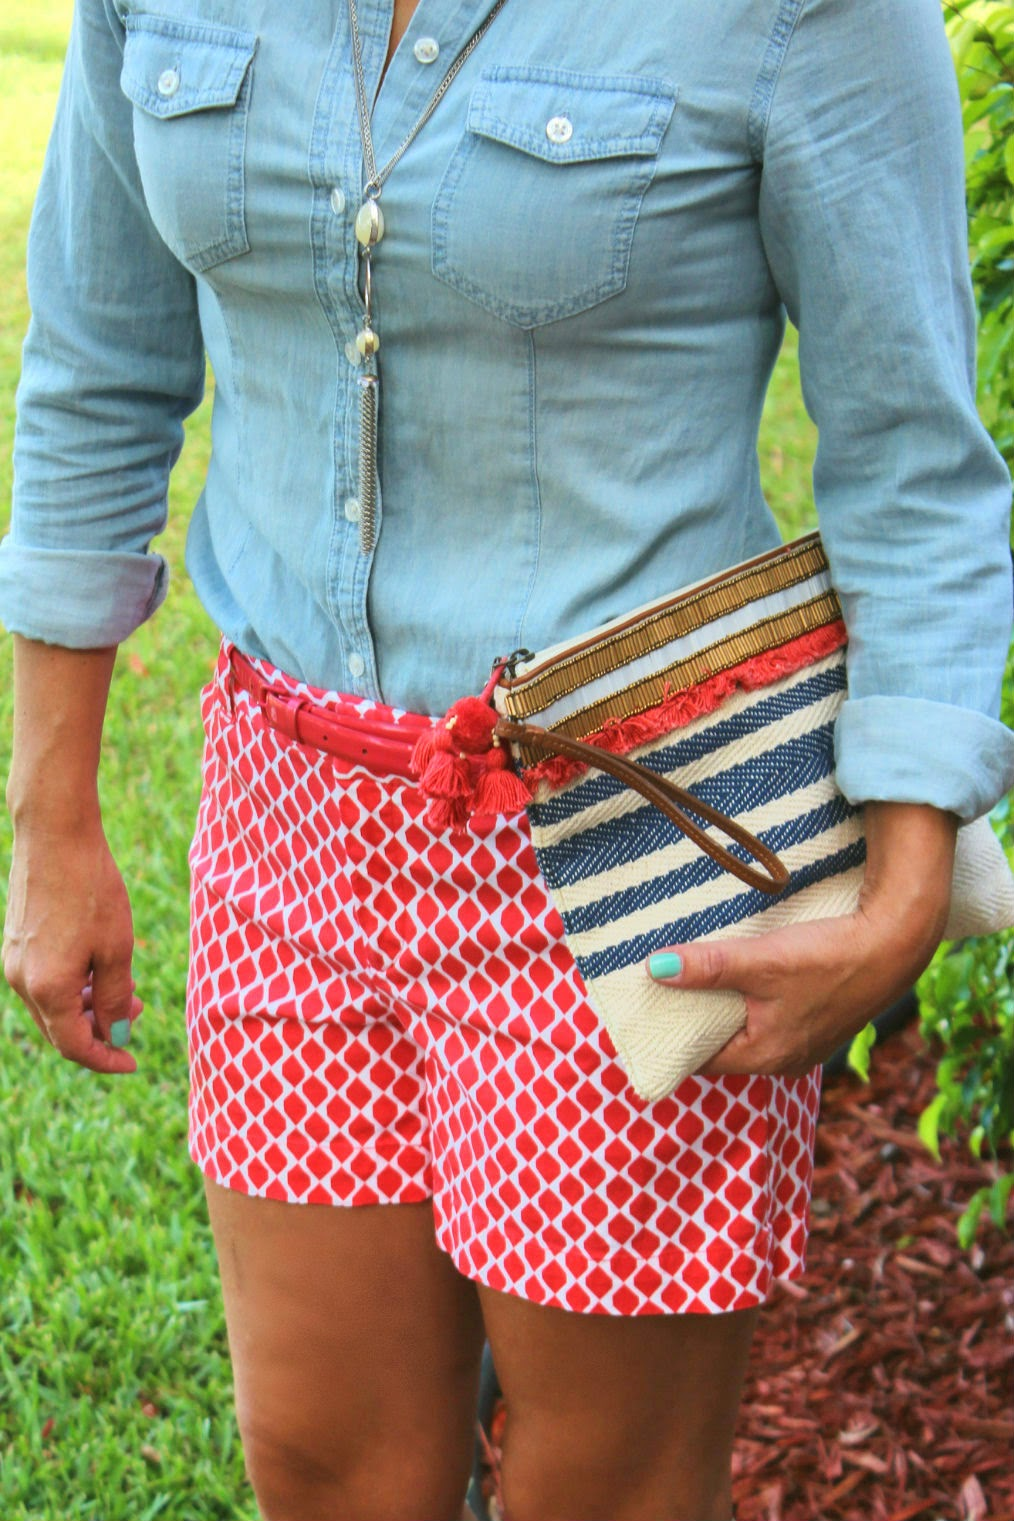 Loft light chambray, Banana Republic coral patterned shorts, Loft clutch